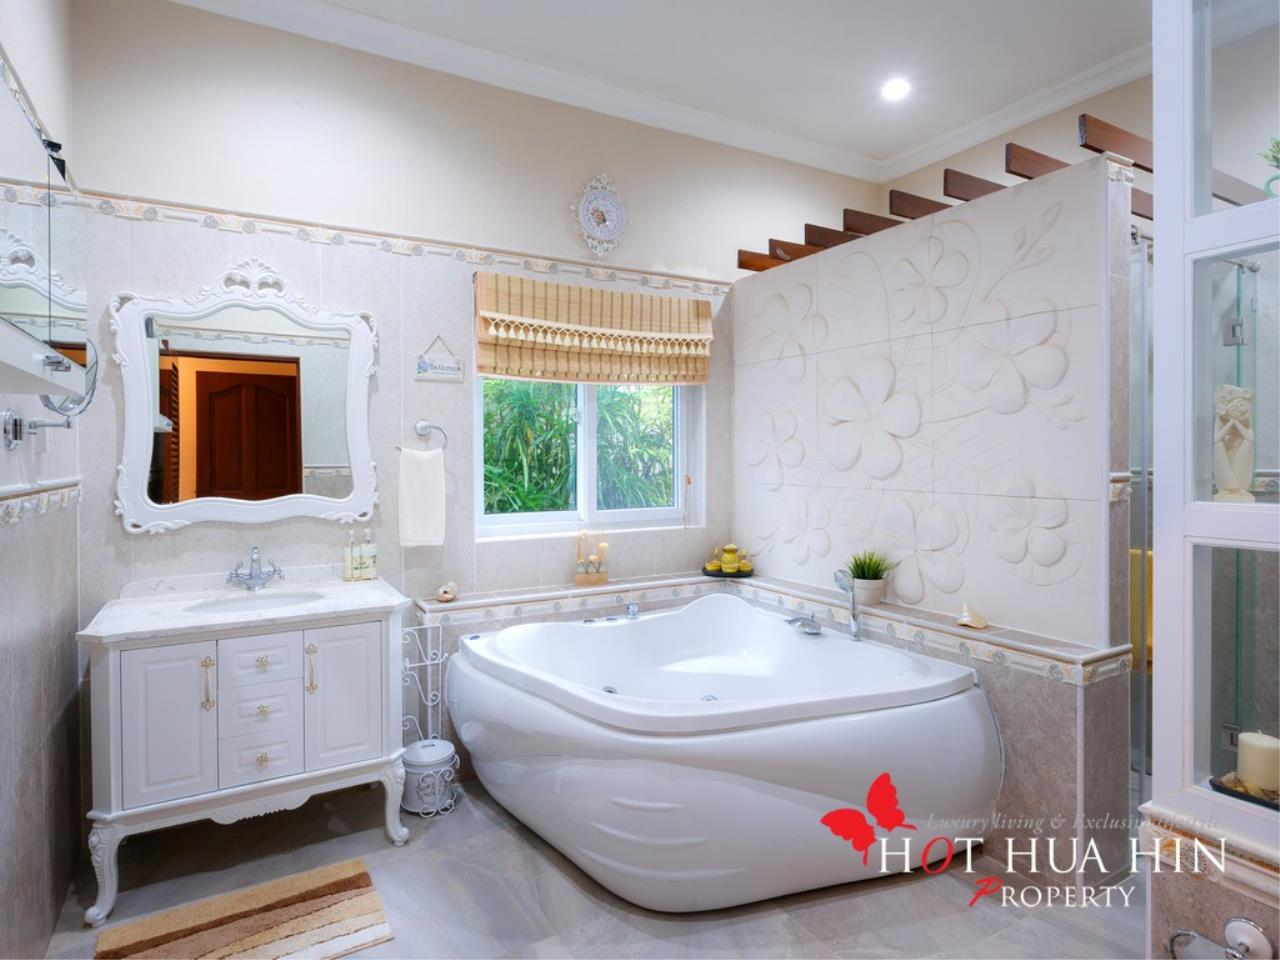 Hot Hua Hin Co. Ltd. Agency's Well Built Home With Stunning Gardens And Two Full Kitchens 14